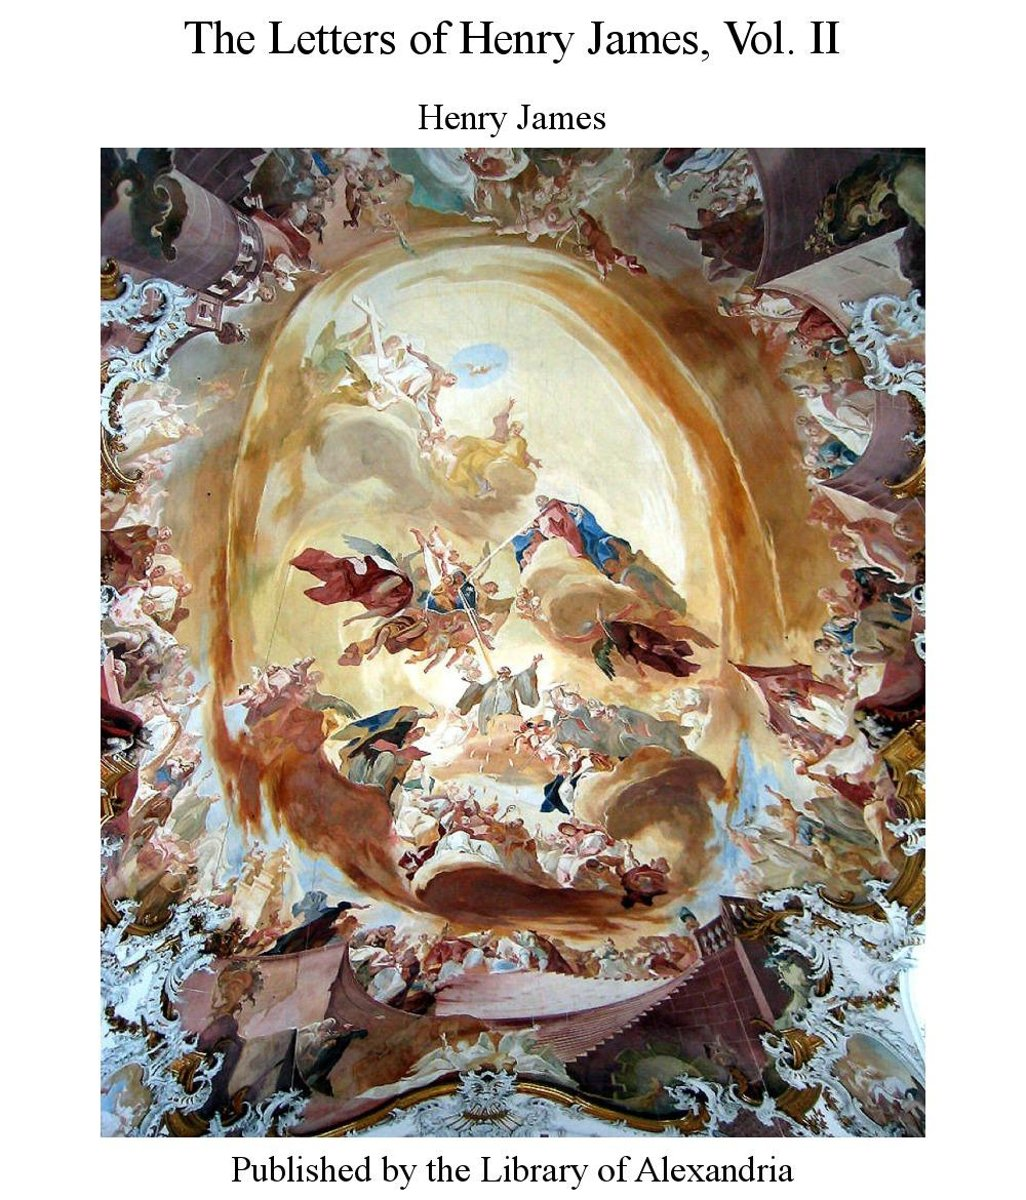 The Letters of Henry James, Vol. II